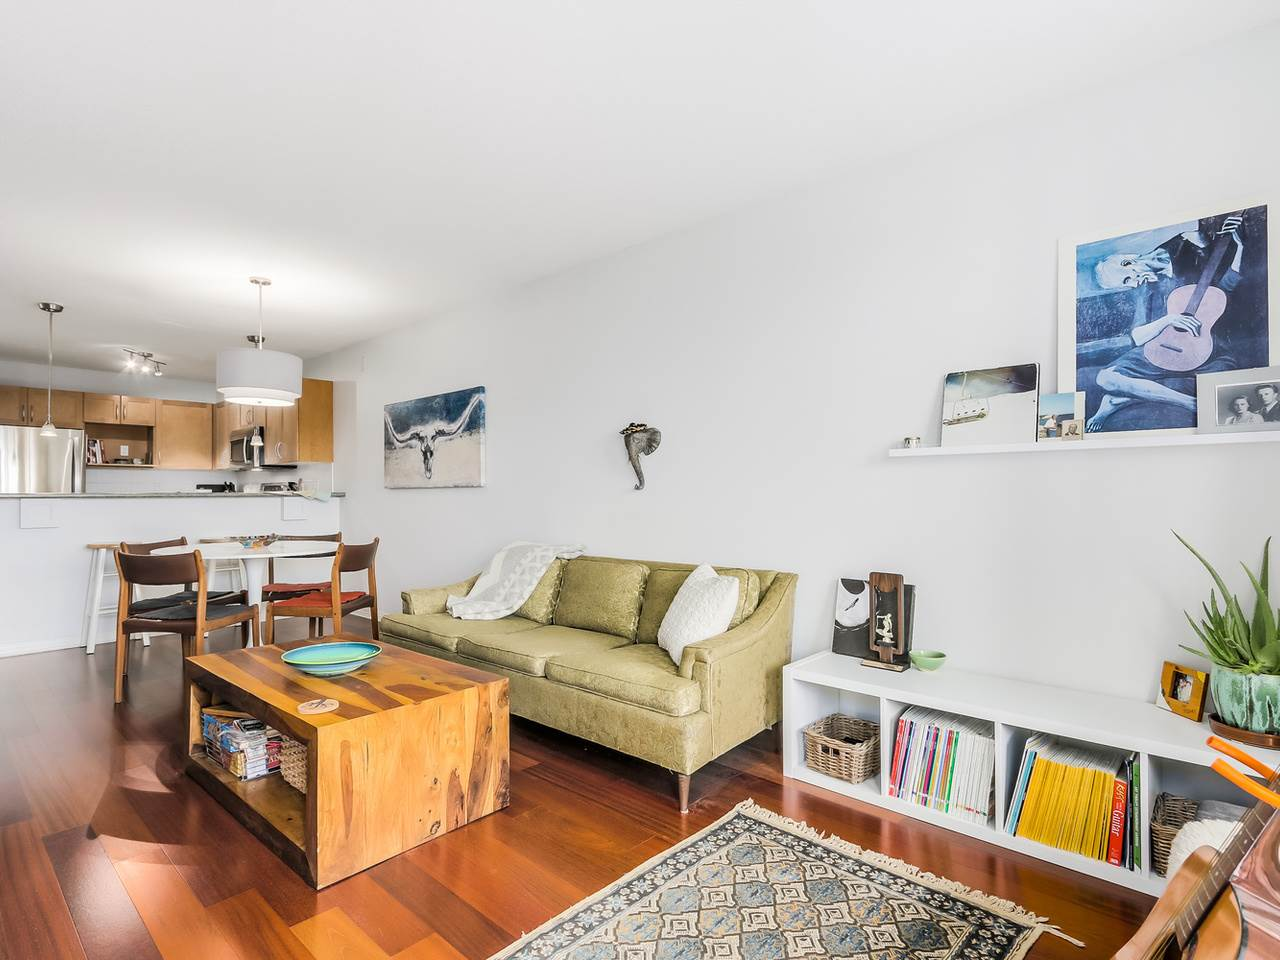 Photo 19: 109 333 E 1ST STREET in North Vancouver: Lower Lonsdale Condo for sale : MLS® # R2032321